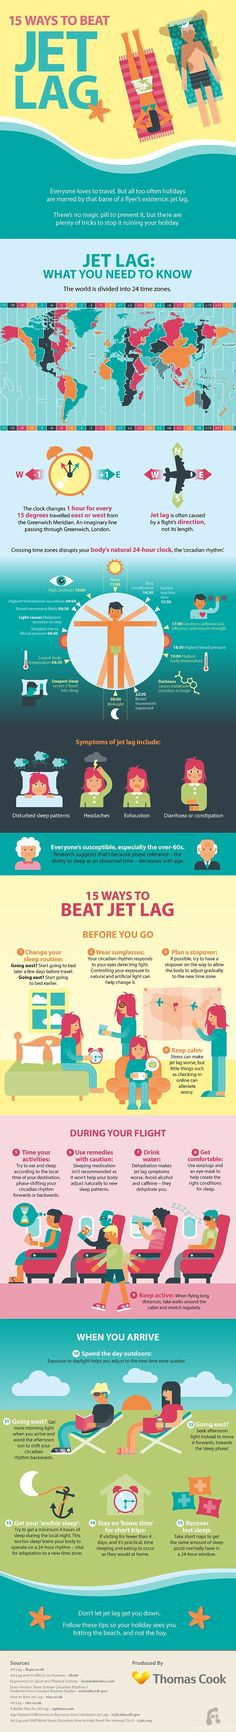 15 WAYS TO AVOID JETLAG #TRAVEL